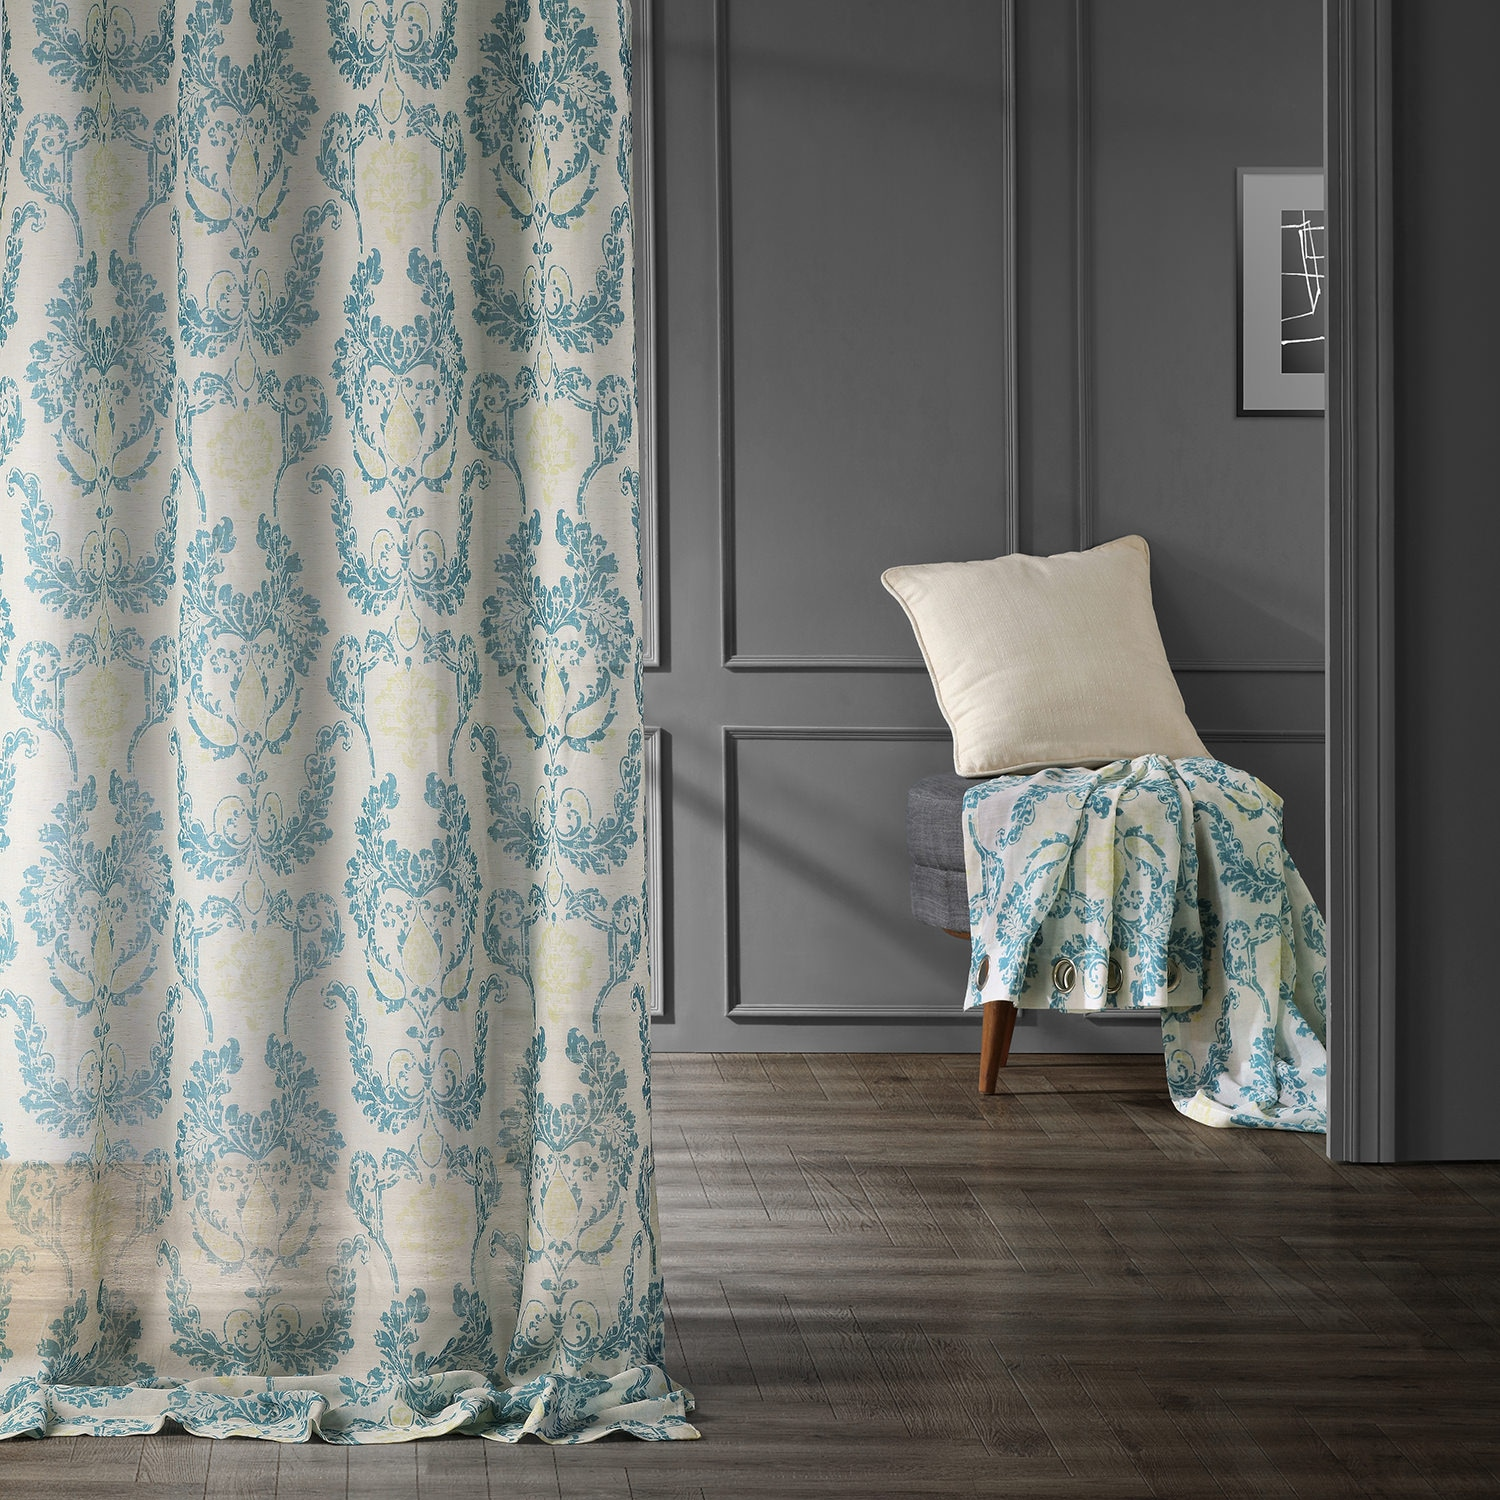 Terrace Teal Grommet Printed Faux Linen Sheer Curtain